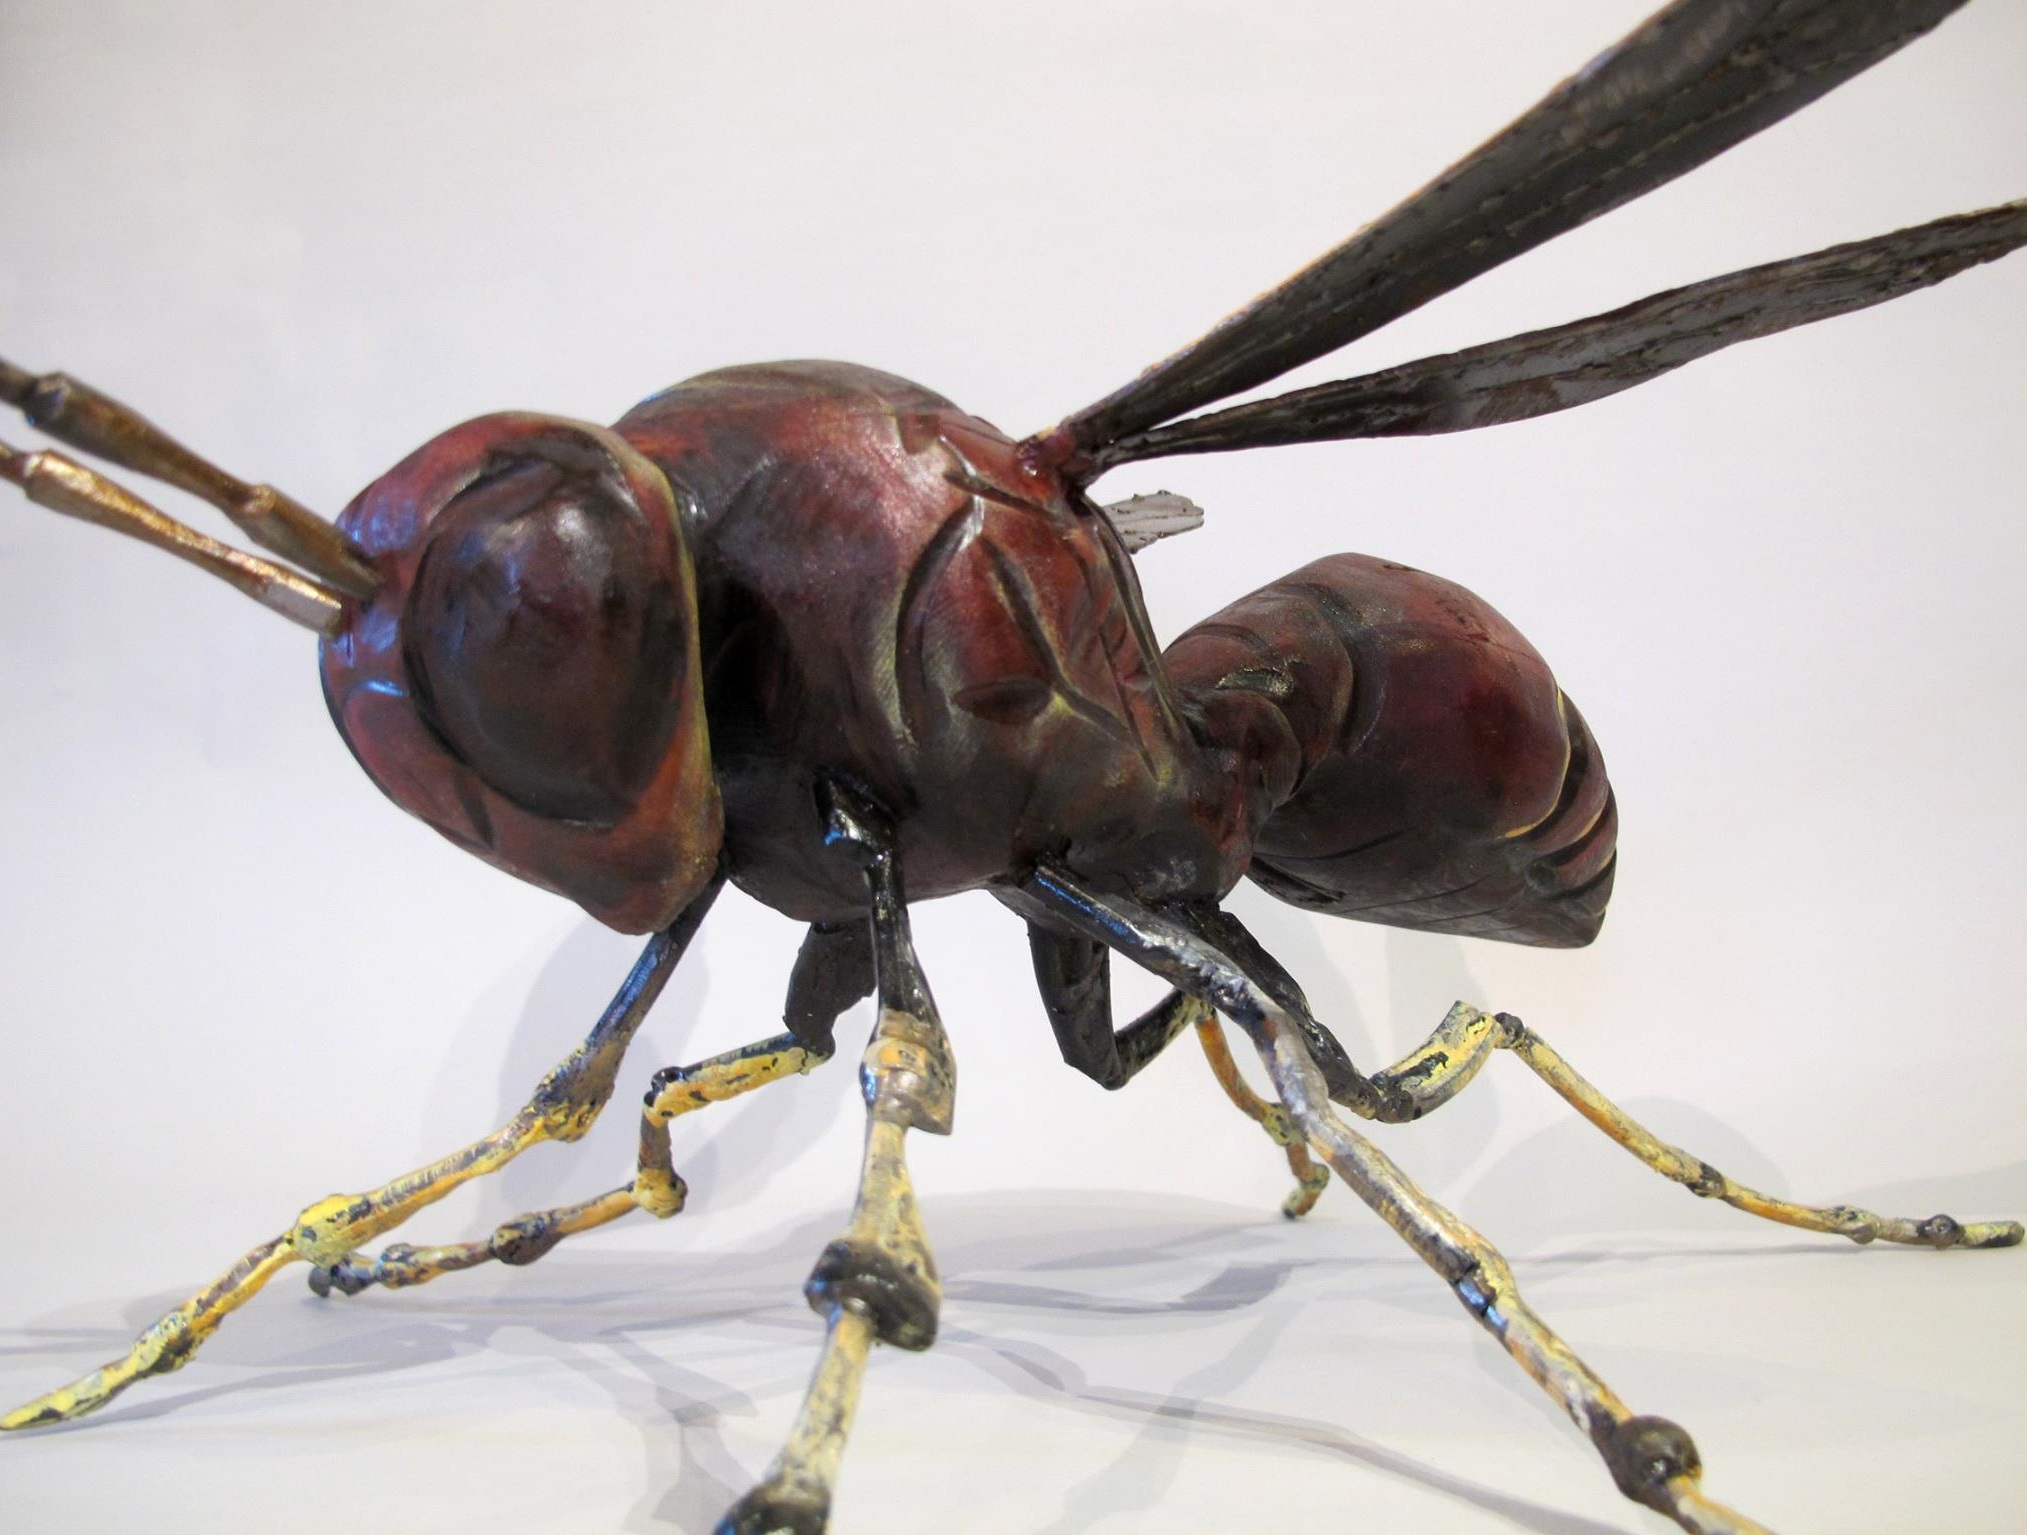 THE WASP - A new creation by Kelly Guidry, unlike any other bugs he has created.